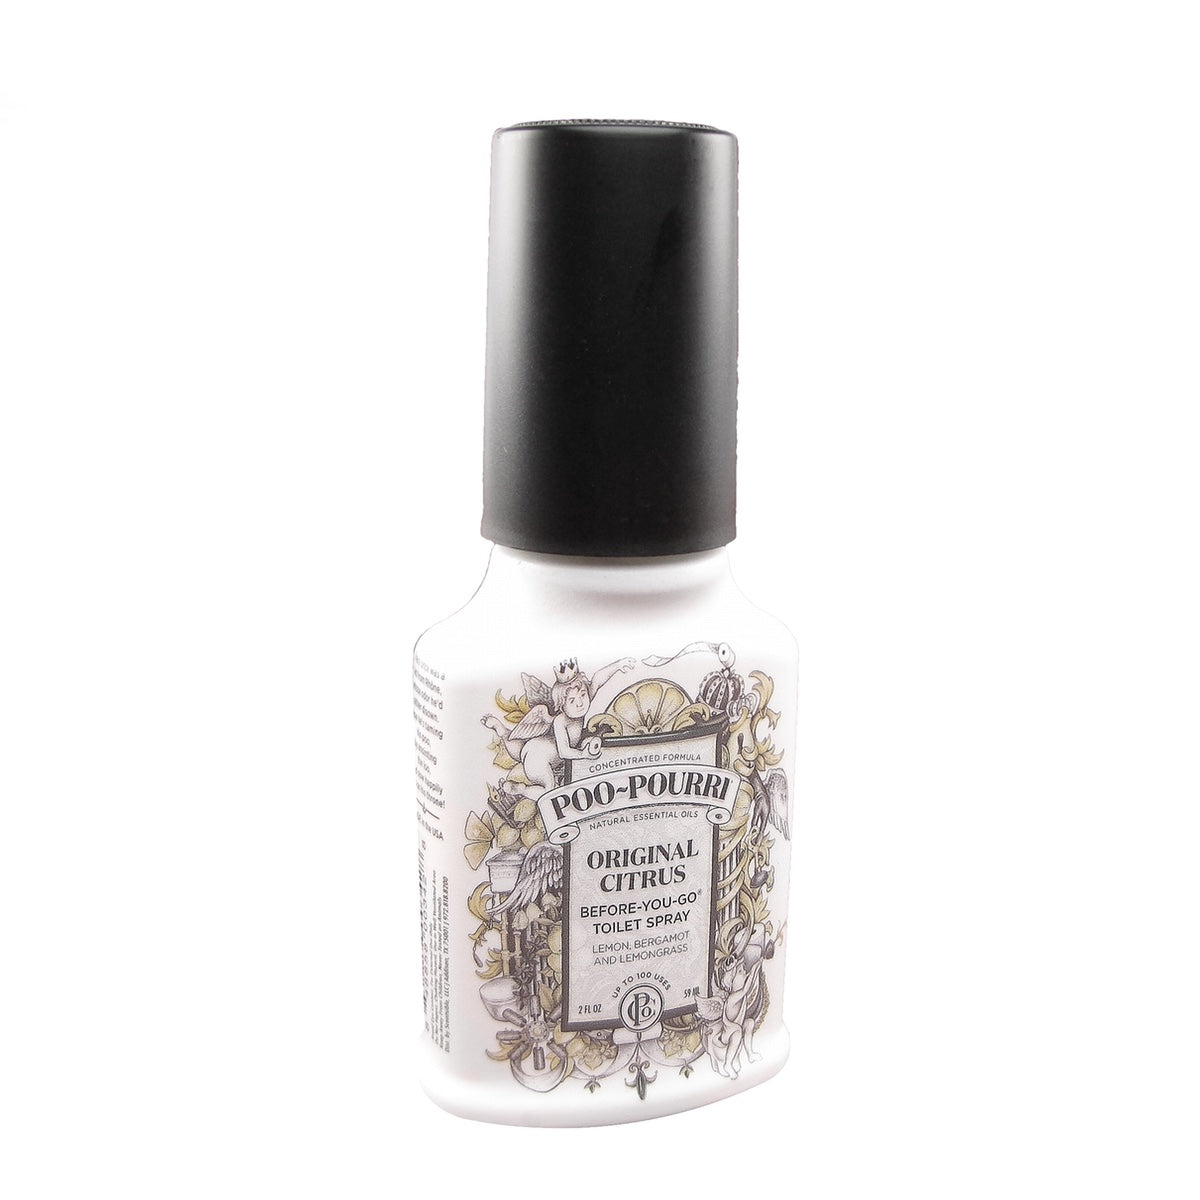 Poo Pourri Original Scent Bathroom Deodorizer Toilet Spray